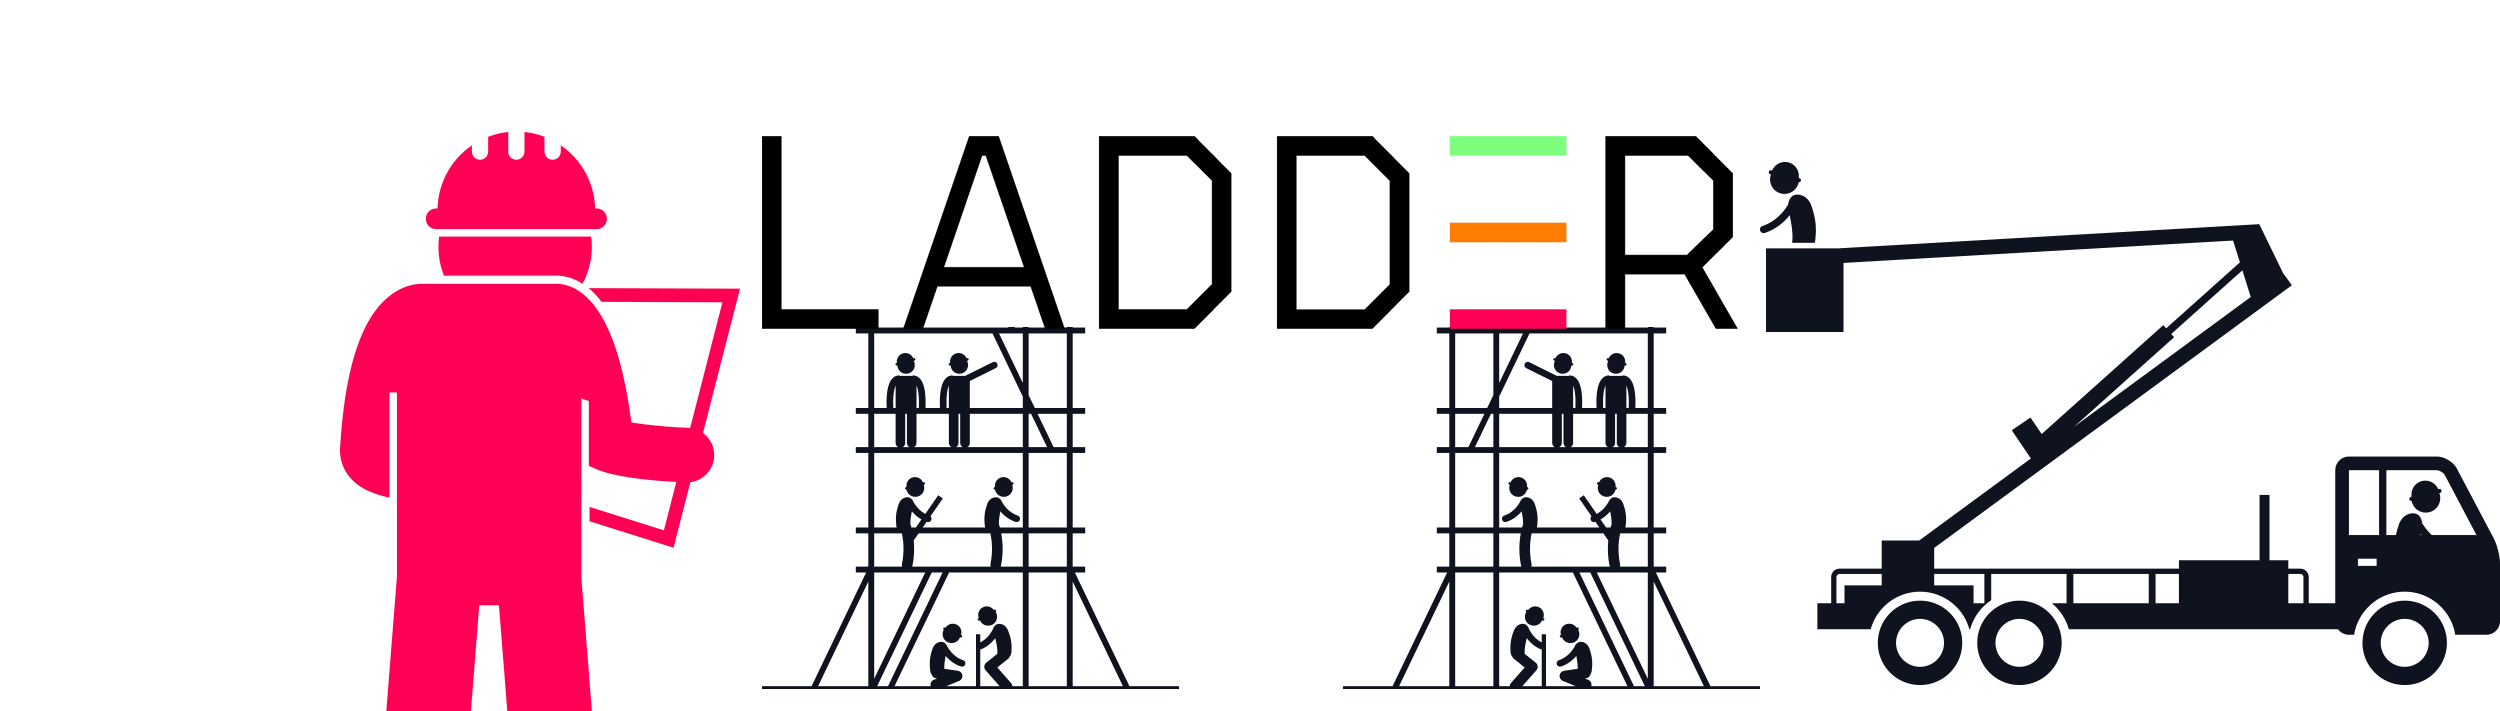 How I Built Ladder's Brand Identity From the Ground Up